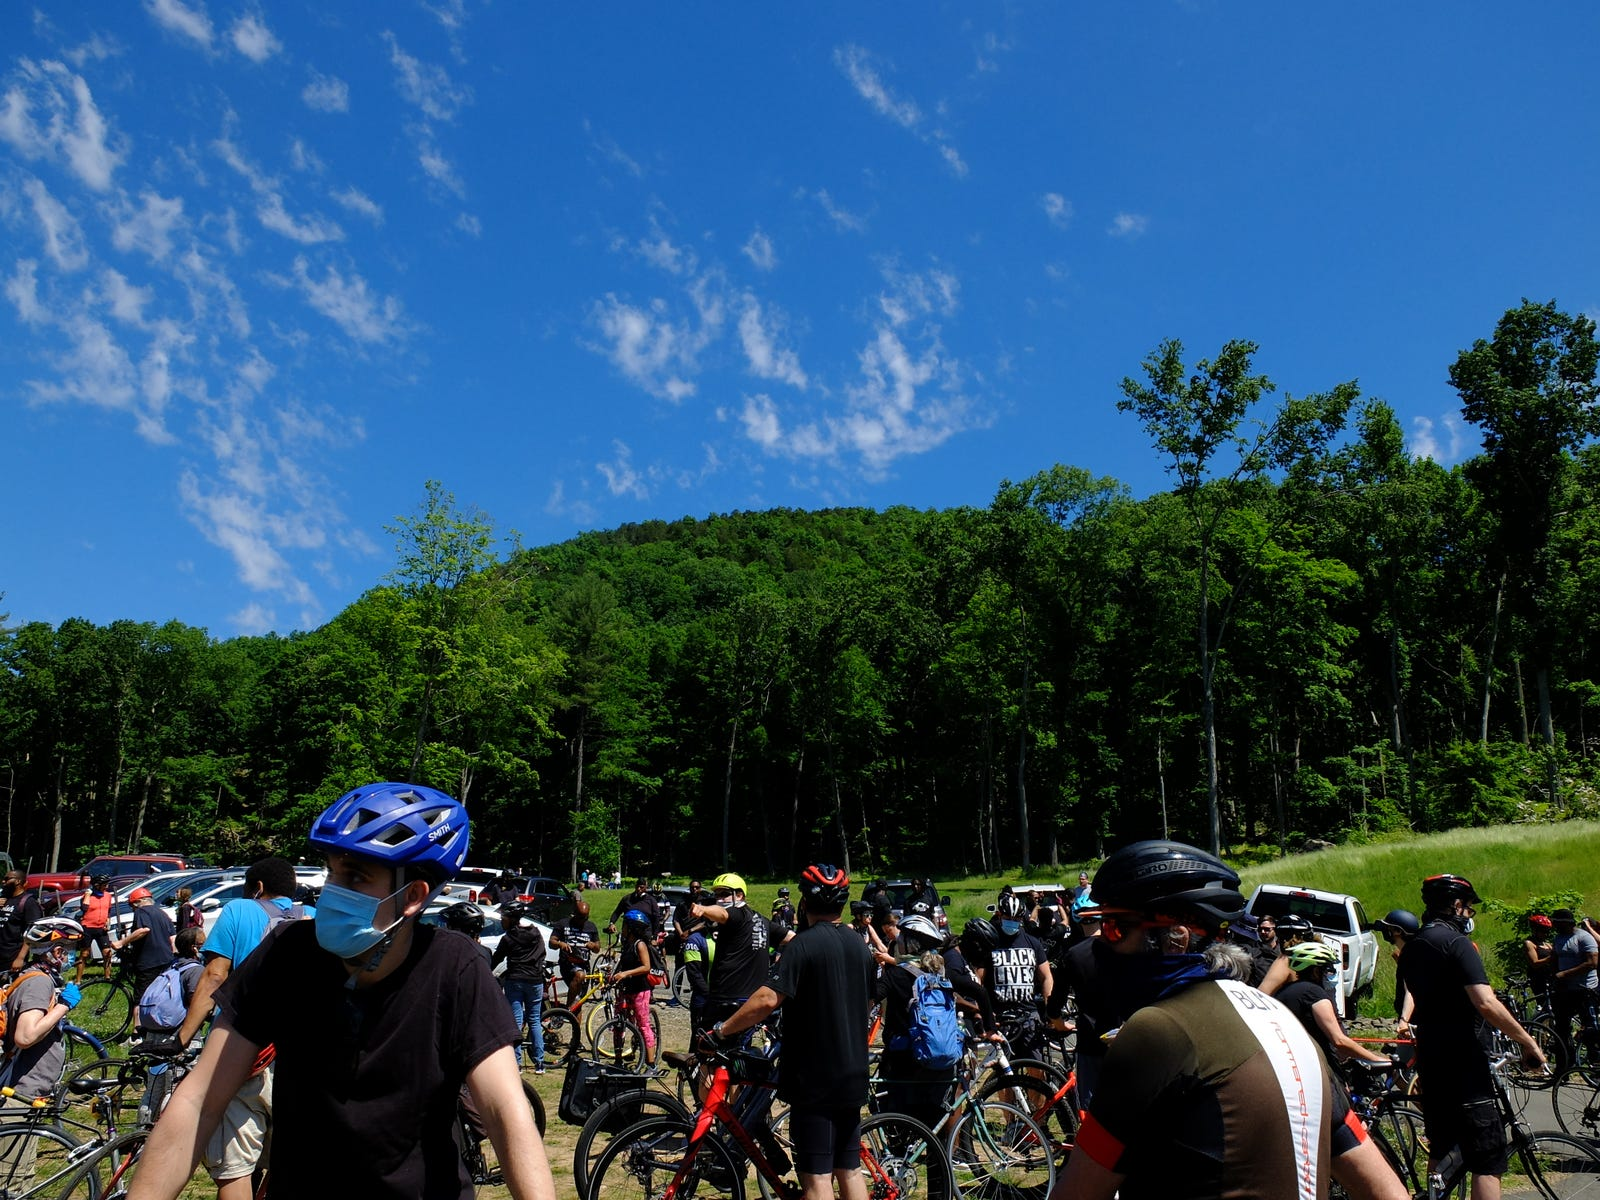 I shot this at the starting point Hamden/New Haven's first Black Lives Matter support ride, Sleeping Giant State Park, 6/13/2020. About 300 riders. Fujfilm X20, f/4at 1/1250 sec, lens set to 7.6mm (about ~30mm, in 35mm equivalent). Fujifilm Velvia emulation.